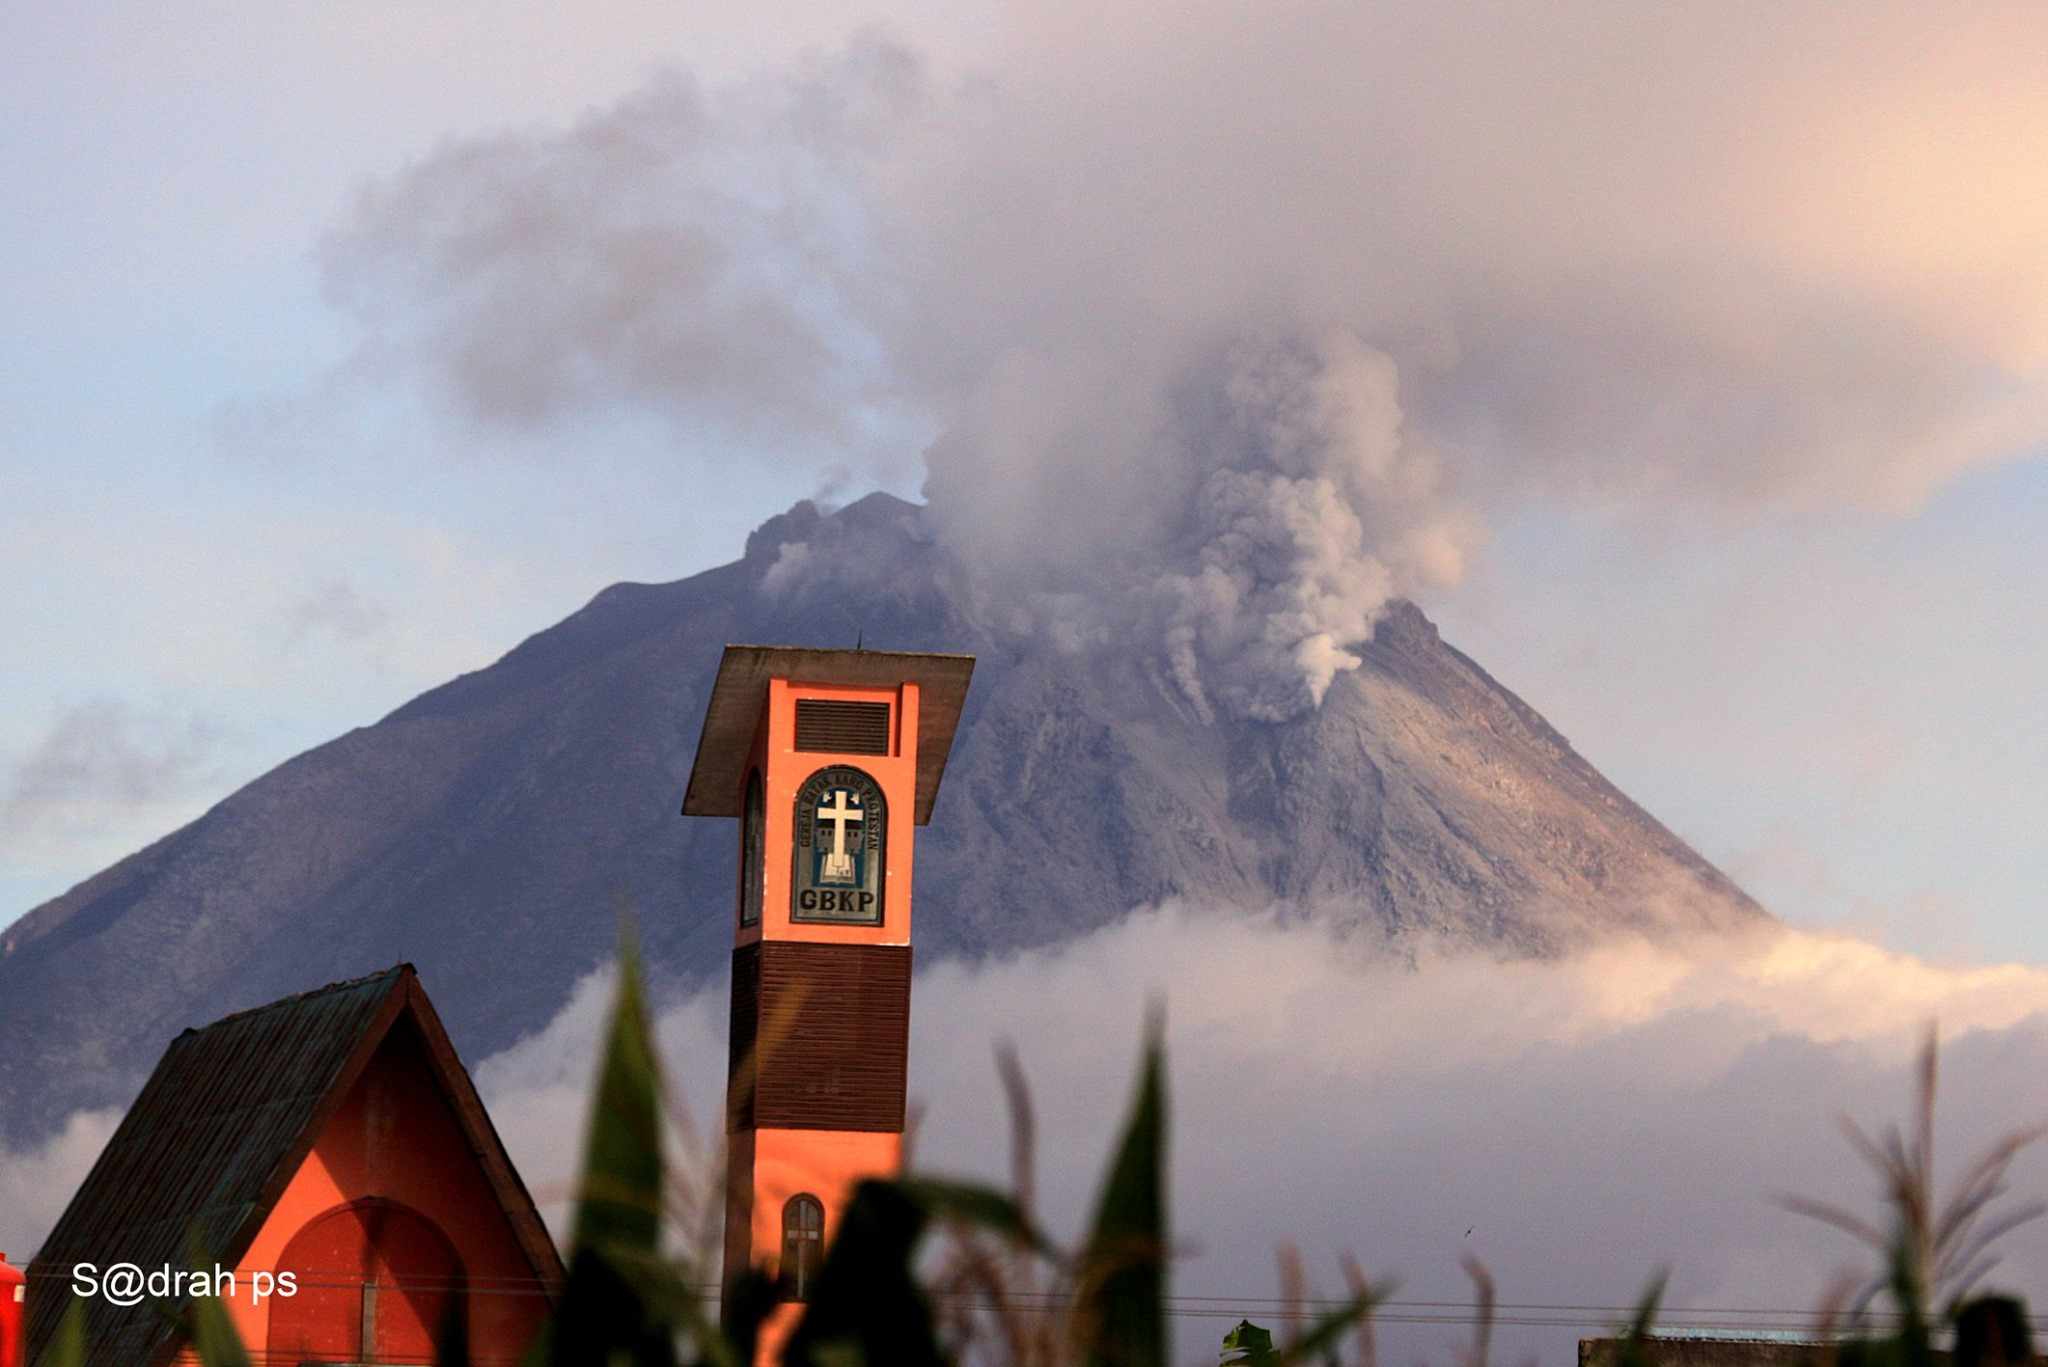 May 25, 2019. EN. Indonesia : Sinabung , Indonesia : Agung , Mexico : Popocatepetl , Costa Rica : Turrialba / Poas / Rincon de la Vieja .